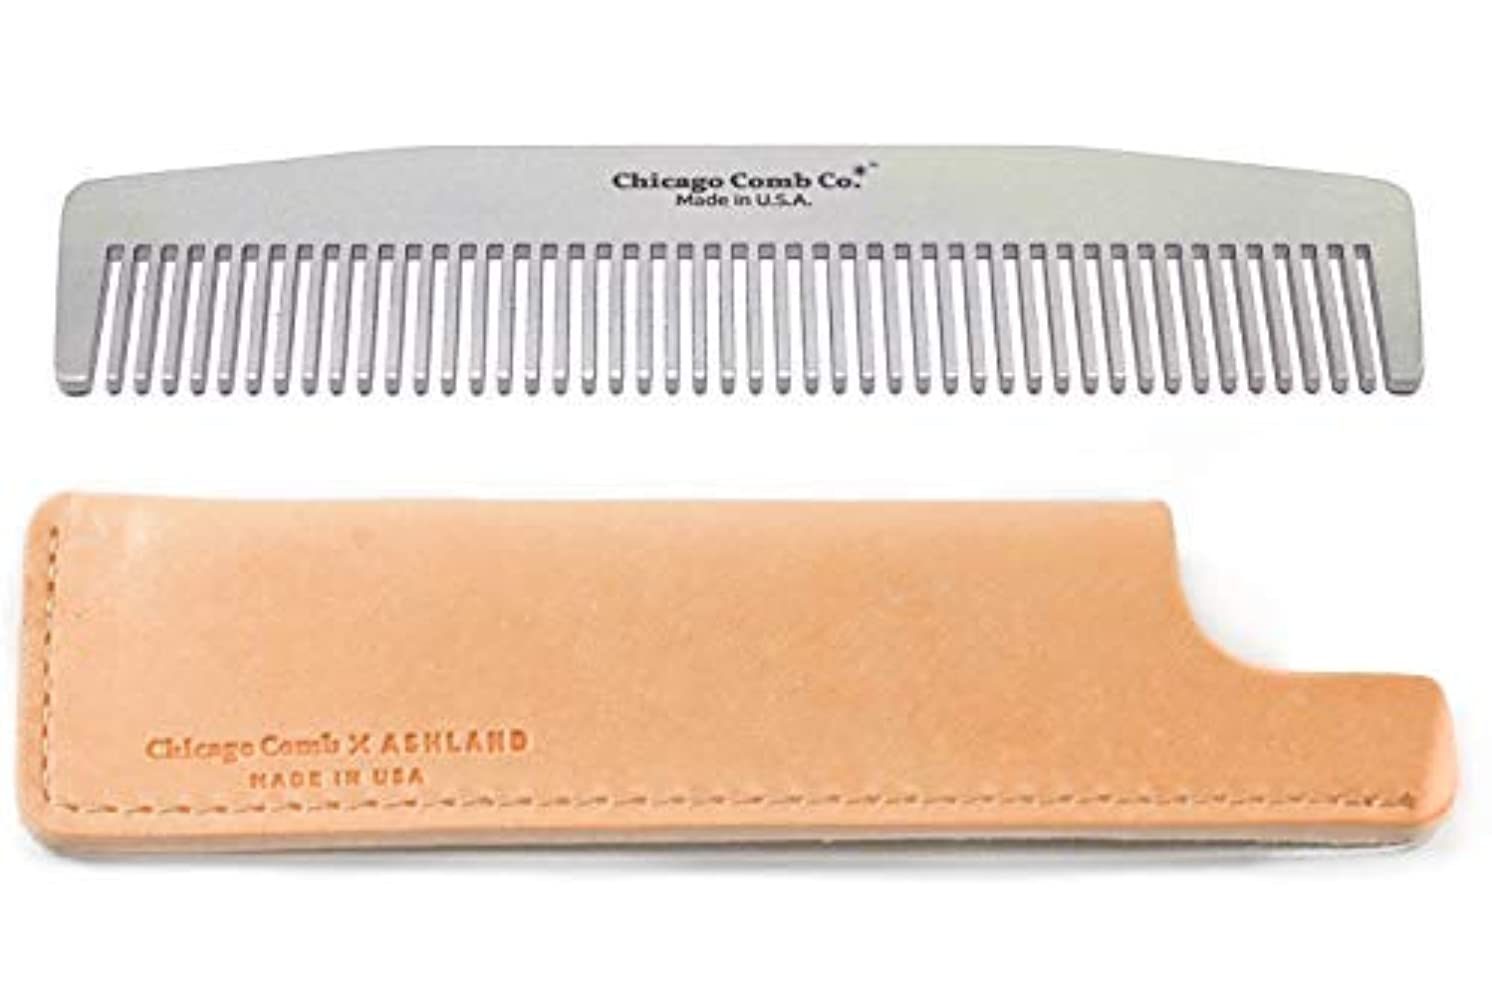 Chicago Comb No. 3 Stainless Steel + Horween Natural Leather Sheath, Made in USA, Ultra-Smooth, Durable, Anti-Static...